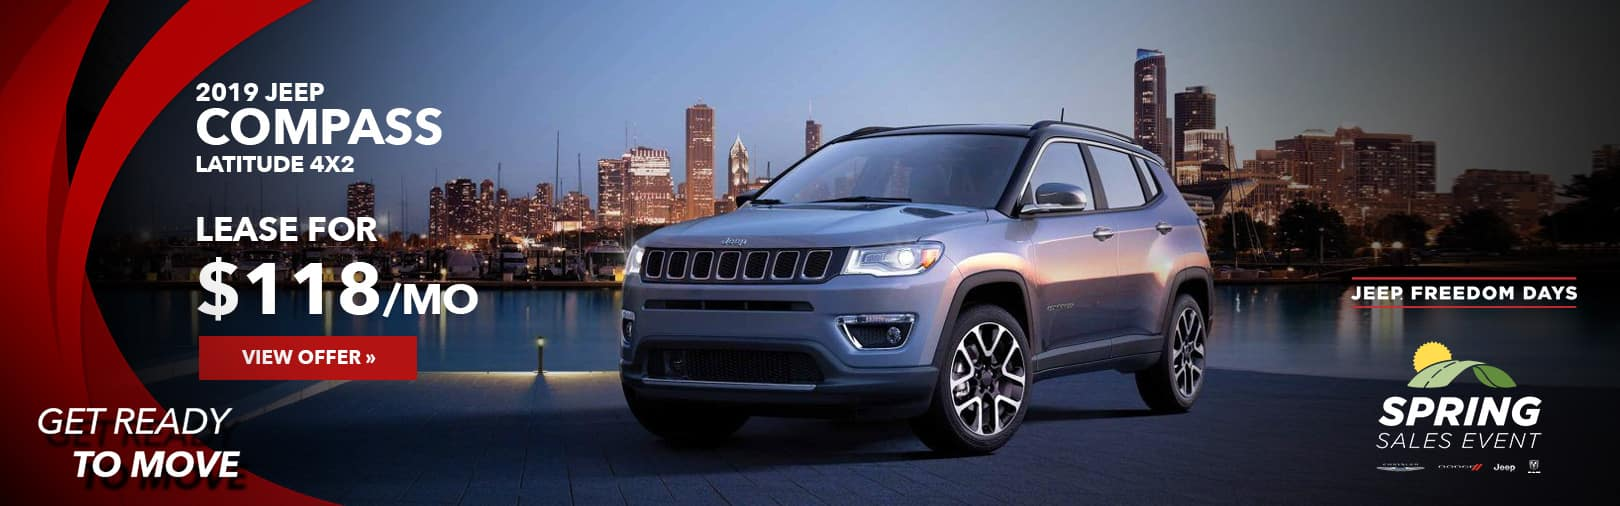 Jeep Compass April Lease Offer